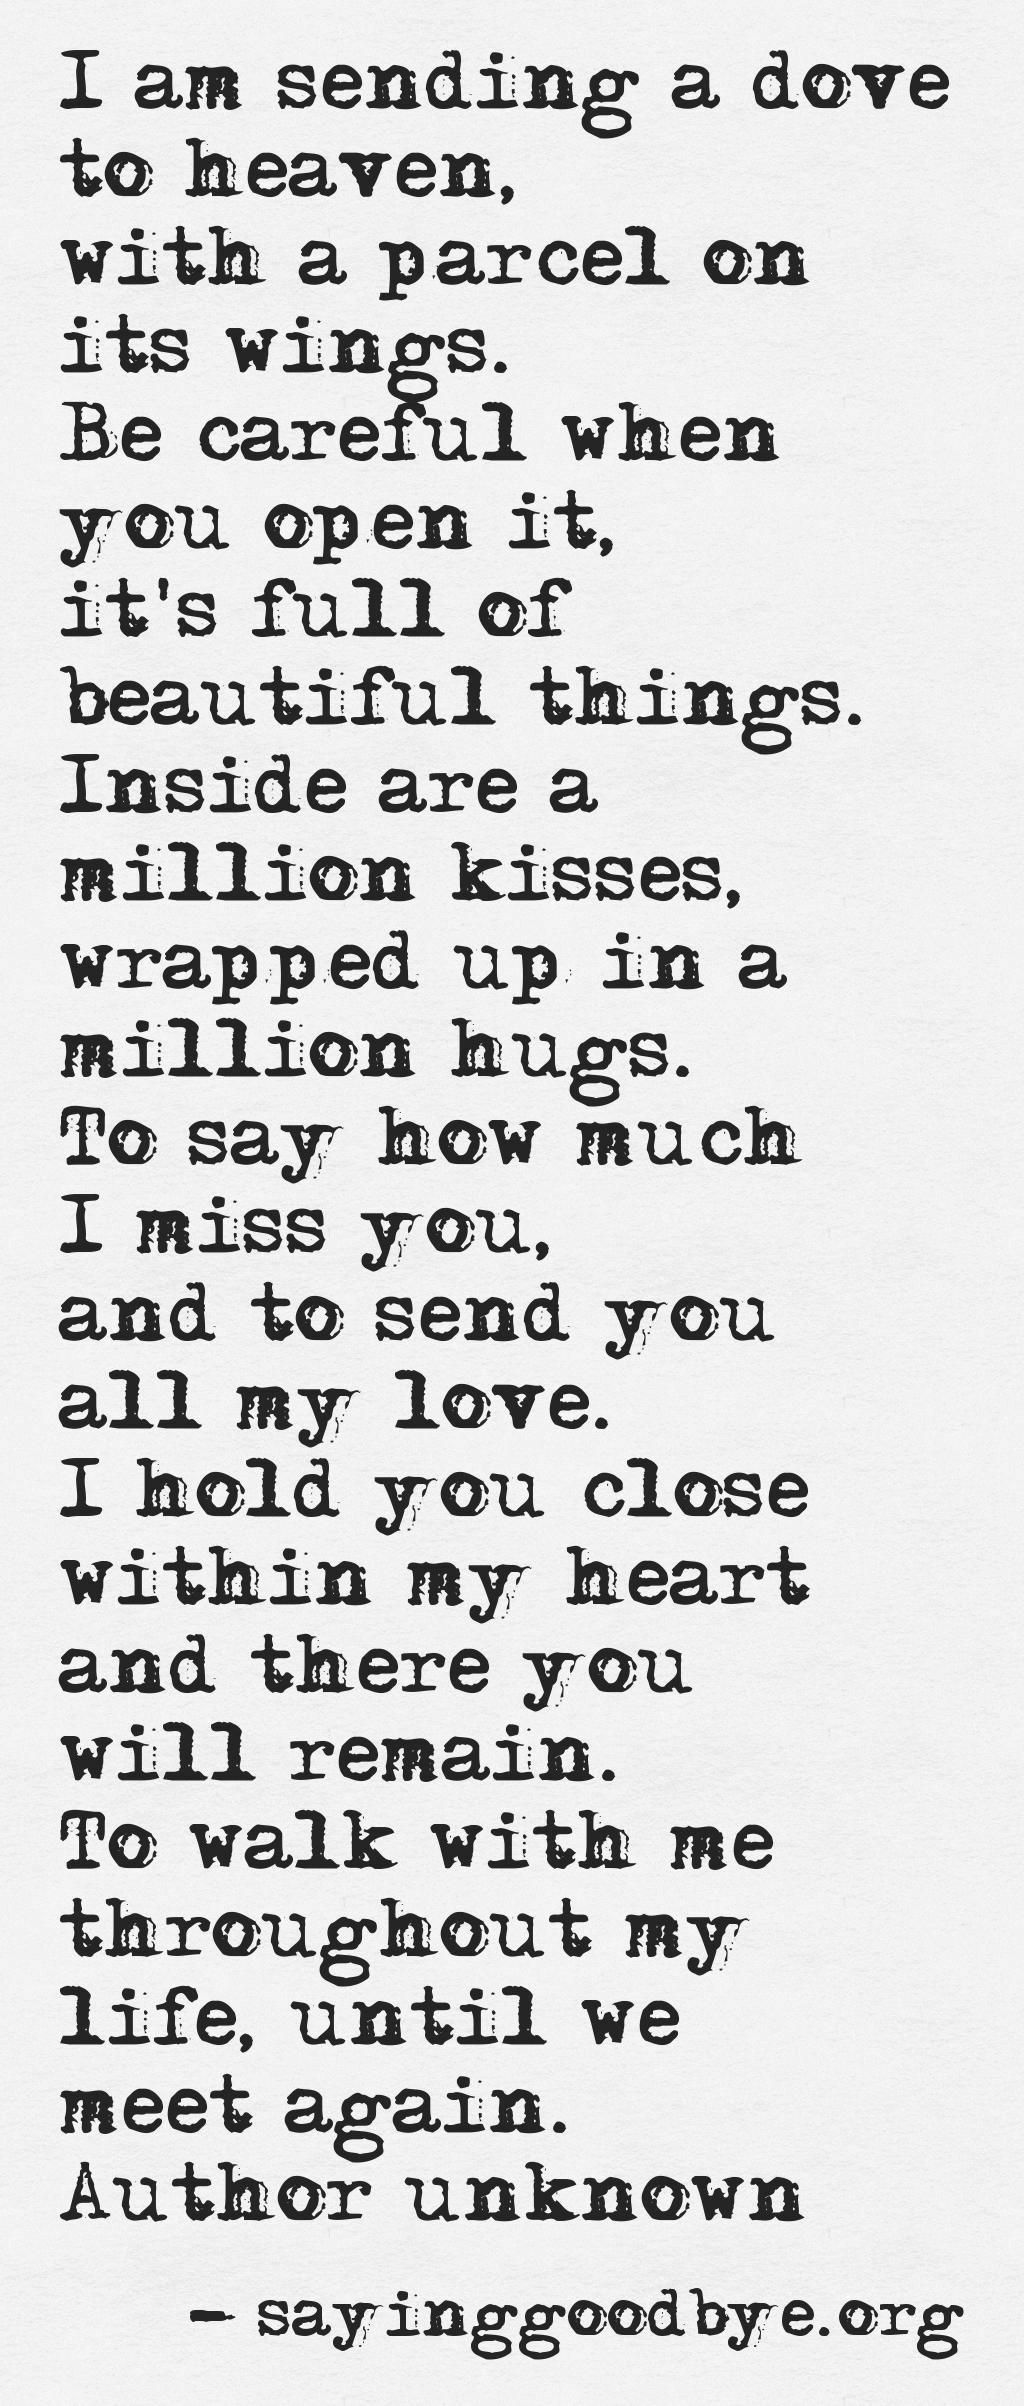 Missing My Mom In Heaven Quotes Pinangela Sayler Carlson On Dad  Pinterest  Dads